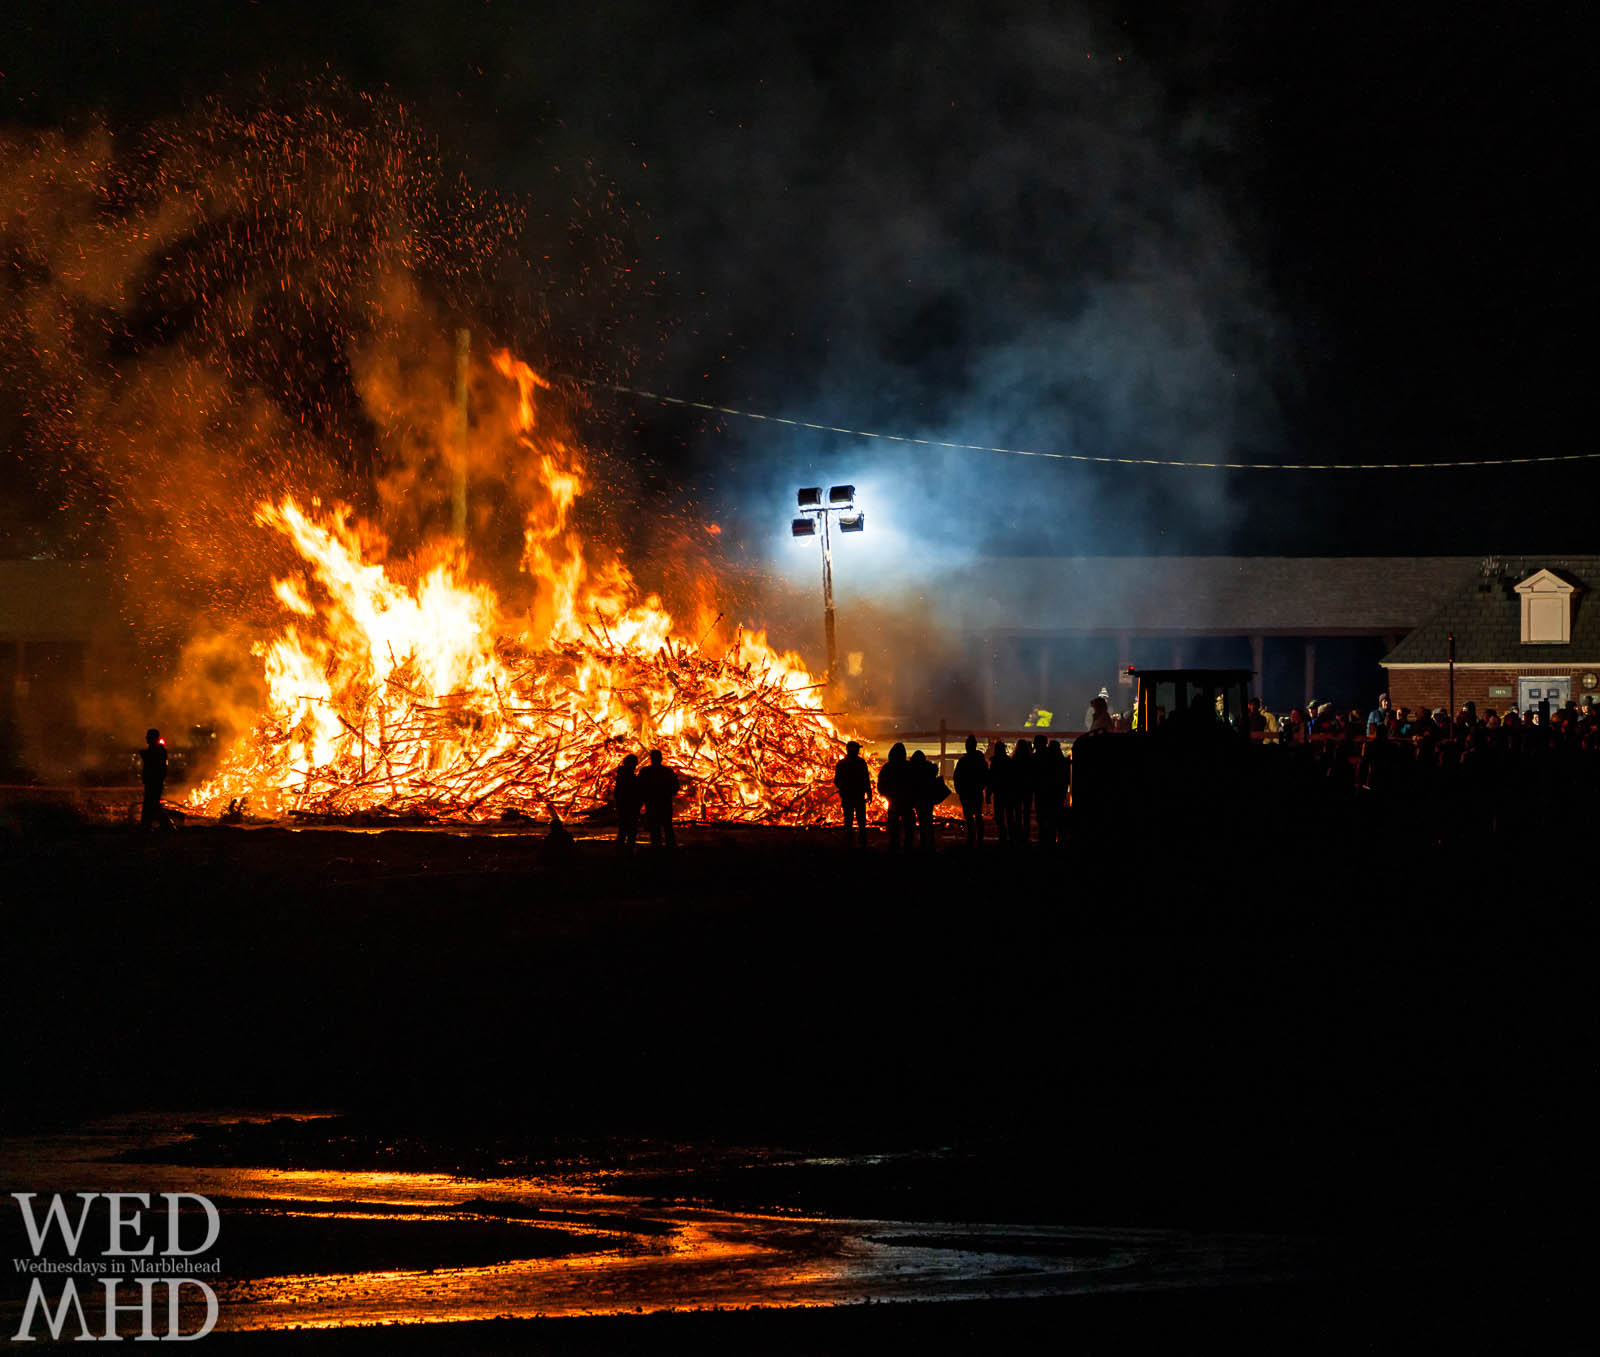 On January 6th, residents of Marblehead gathered to watch collected Christmas trees set aflame in the annual Epiphany bonfire at Riverhead Beach